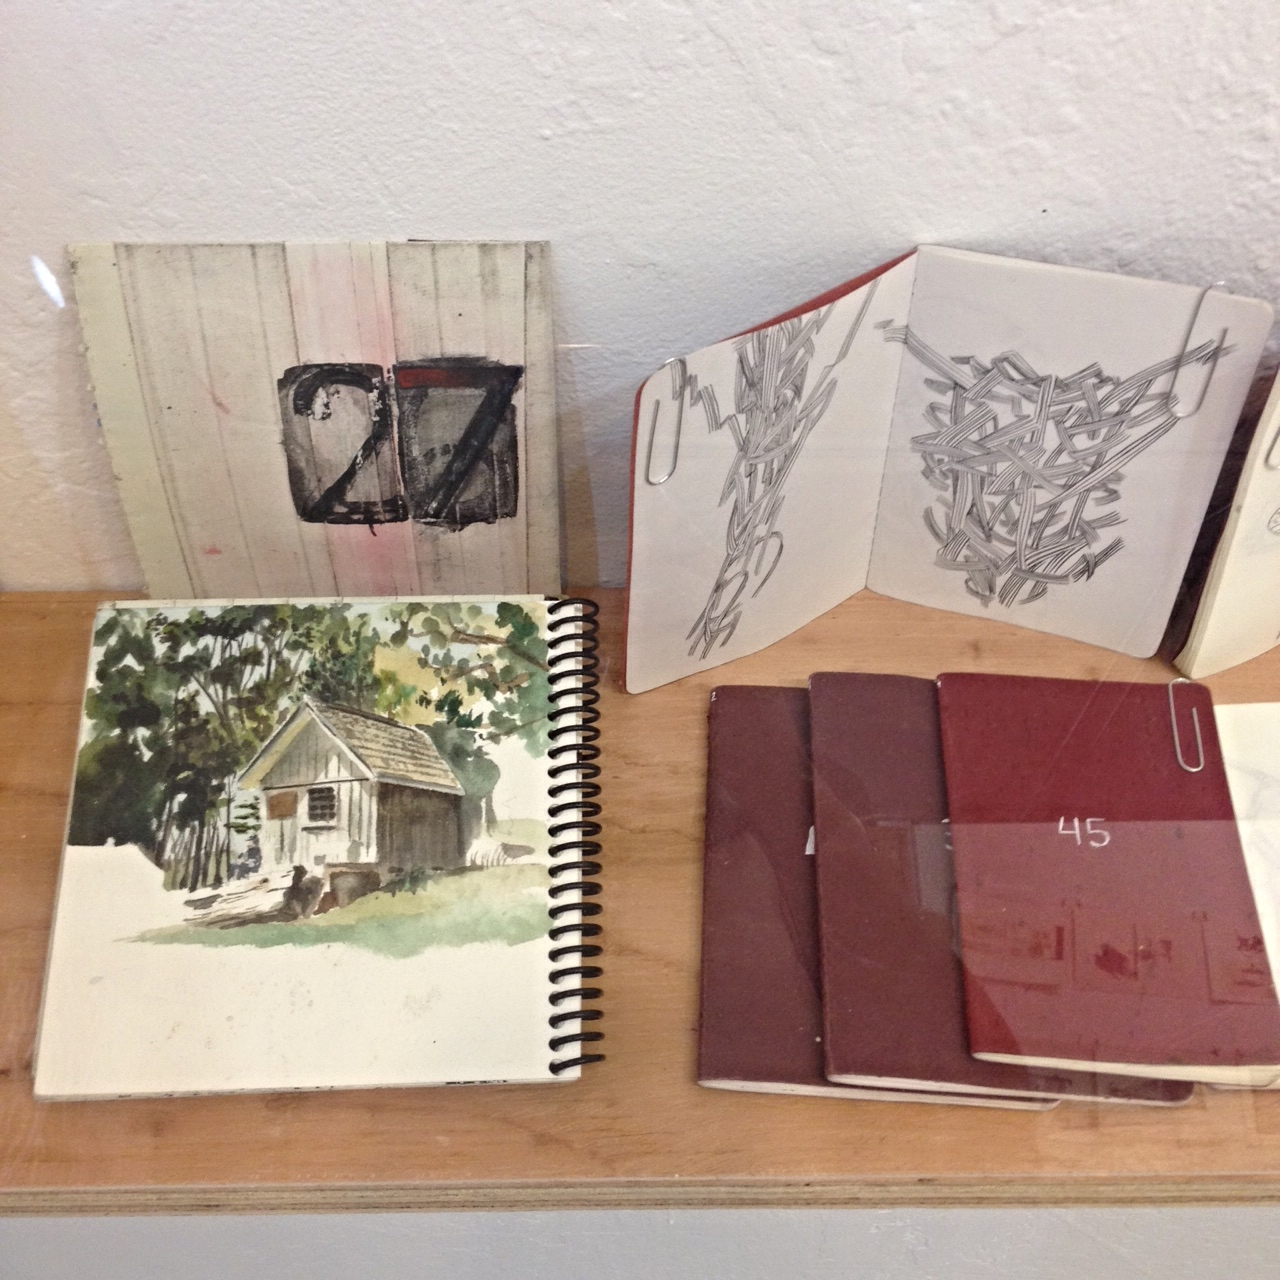 Sketchbooks by Rob Sato. All numbered as you can see here.